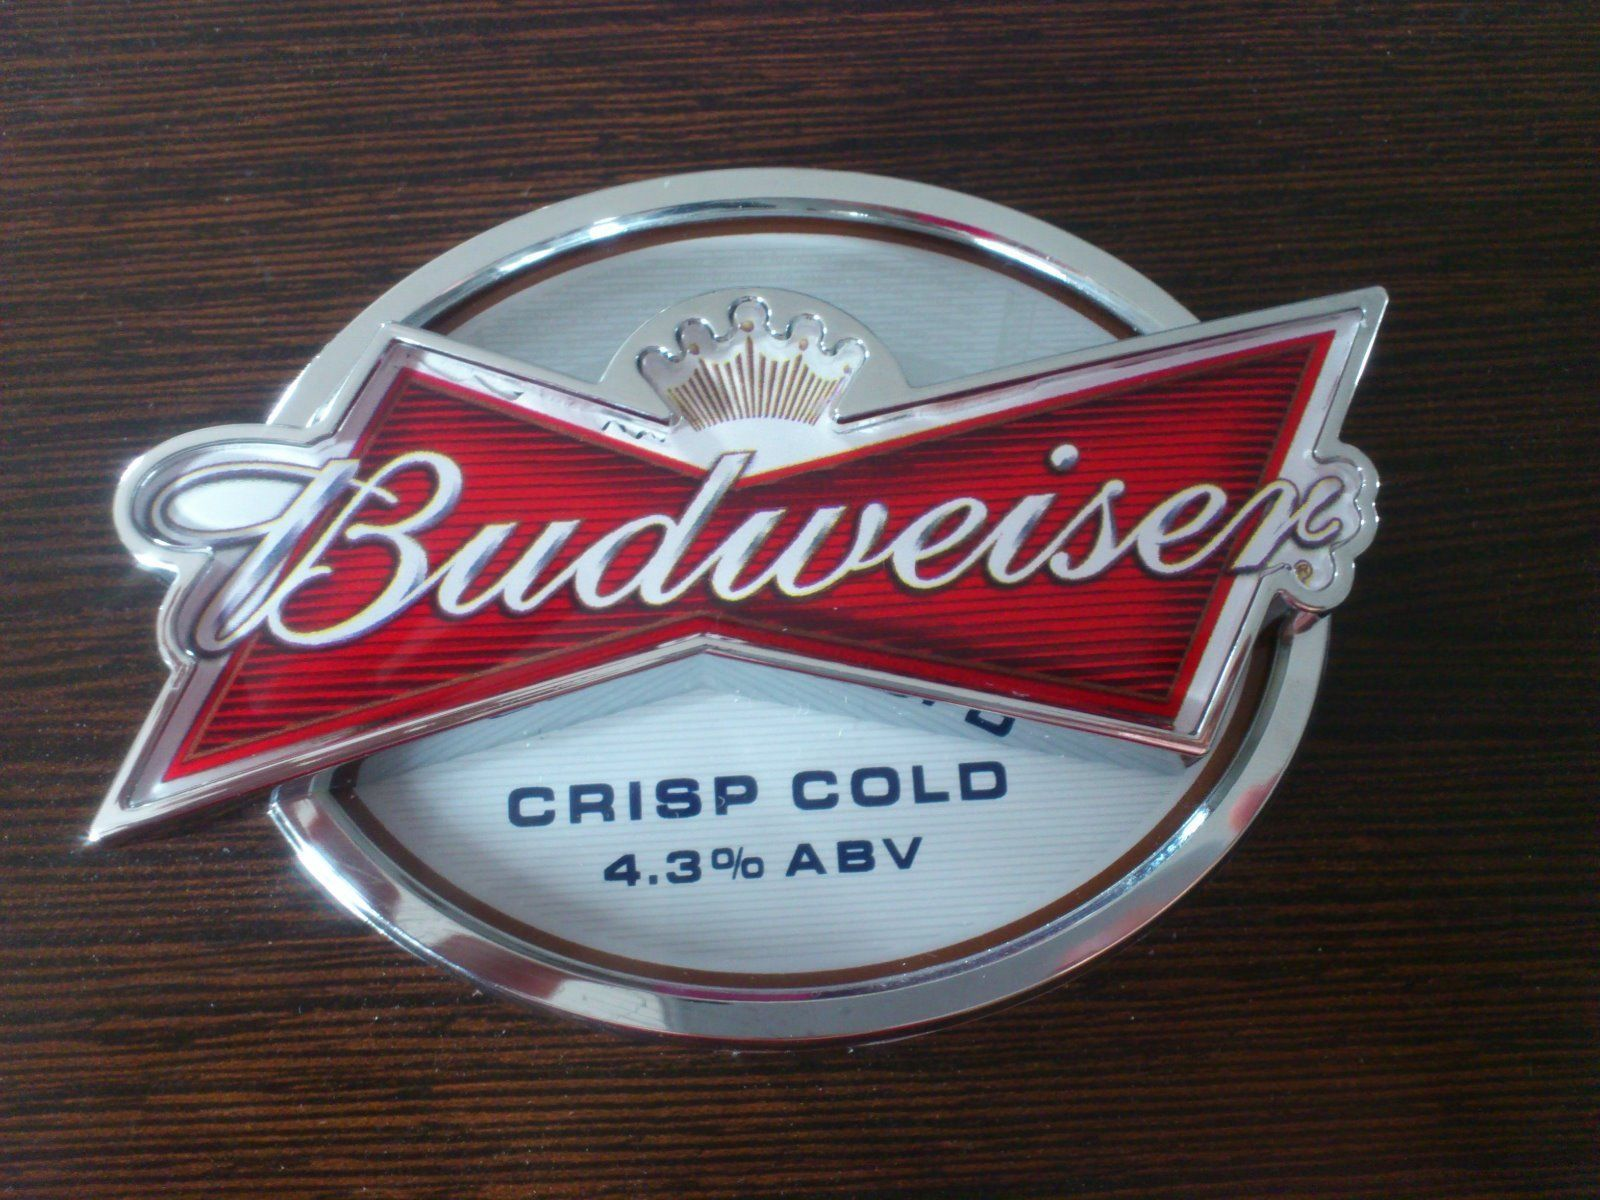 Budweiser 3d Shaped Lens Pod Based On Bow Tie Brand Mark For Illuminated T Bar Mounting Produced By Imi Cornelius Drinking Beer 3d Shape Budweiser